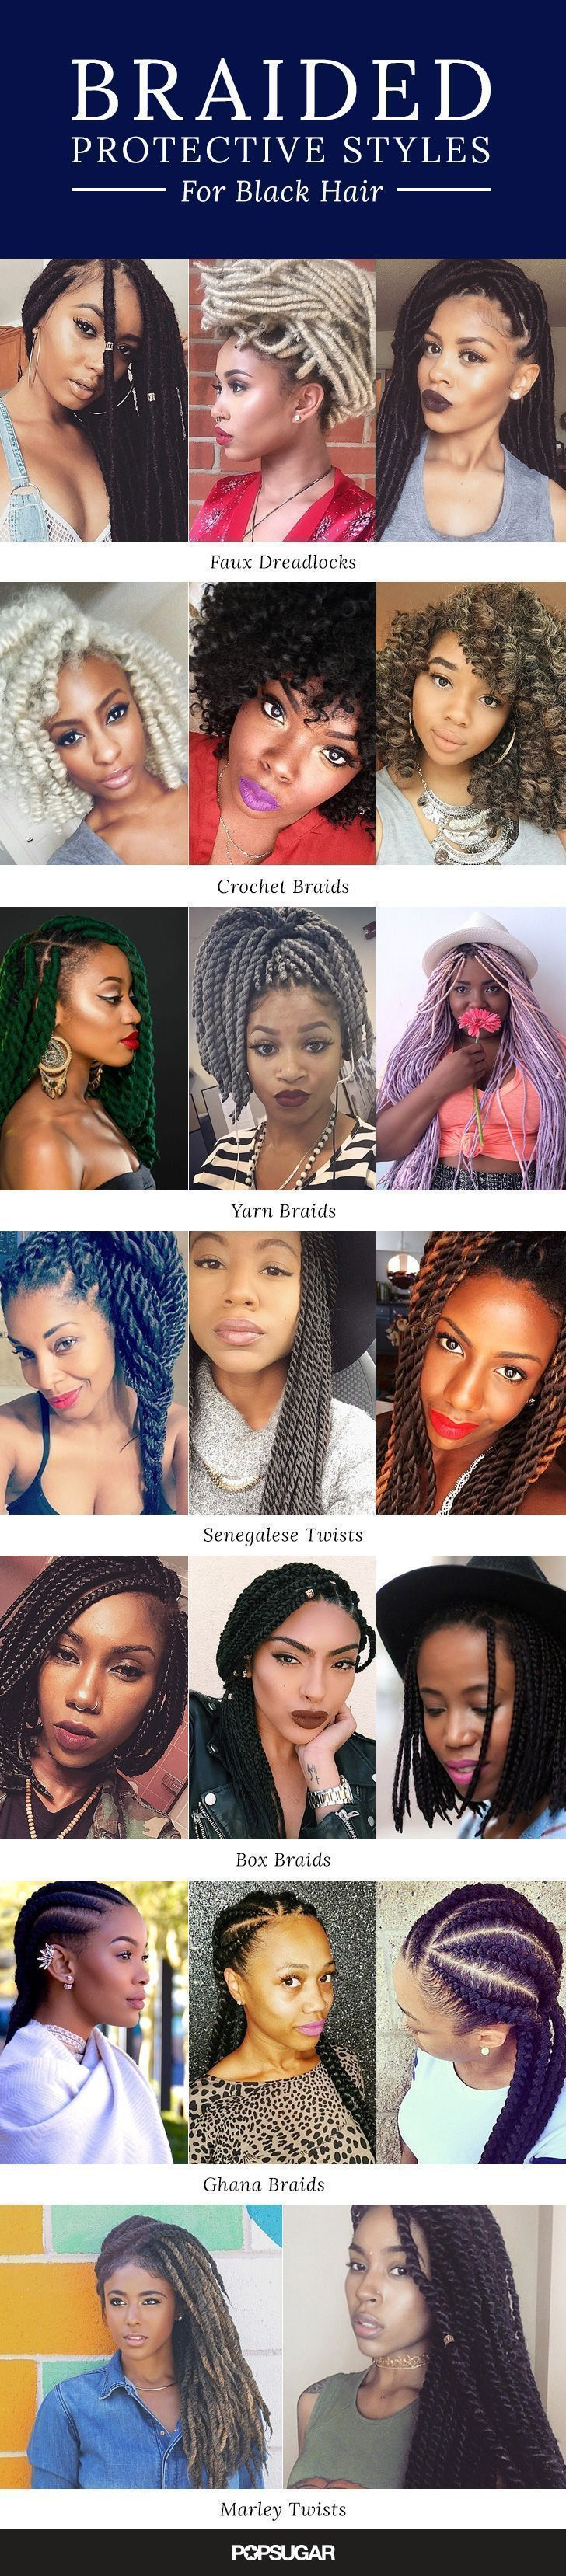 Looking for a new protective hairstyle for natural hair? These braids for black women add extensions for a longer-lasting style that's easy to maintain. There are twists, dreadlocks, crochet braids, Senegalese twists, box braids, Ghana braids, cornrows, and marley twists. #LocsHairstylesForWomen #newnaturalhairstyles #ghanabraids #blackhairstylescornrows #boxbraidedhairstyles